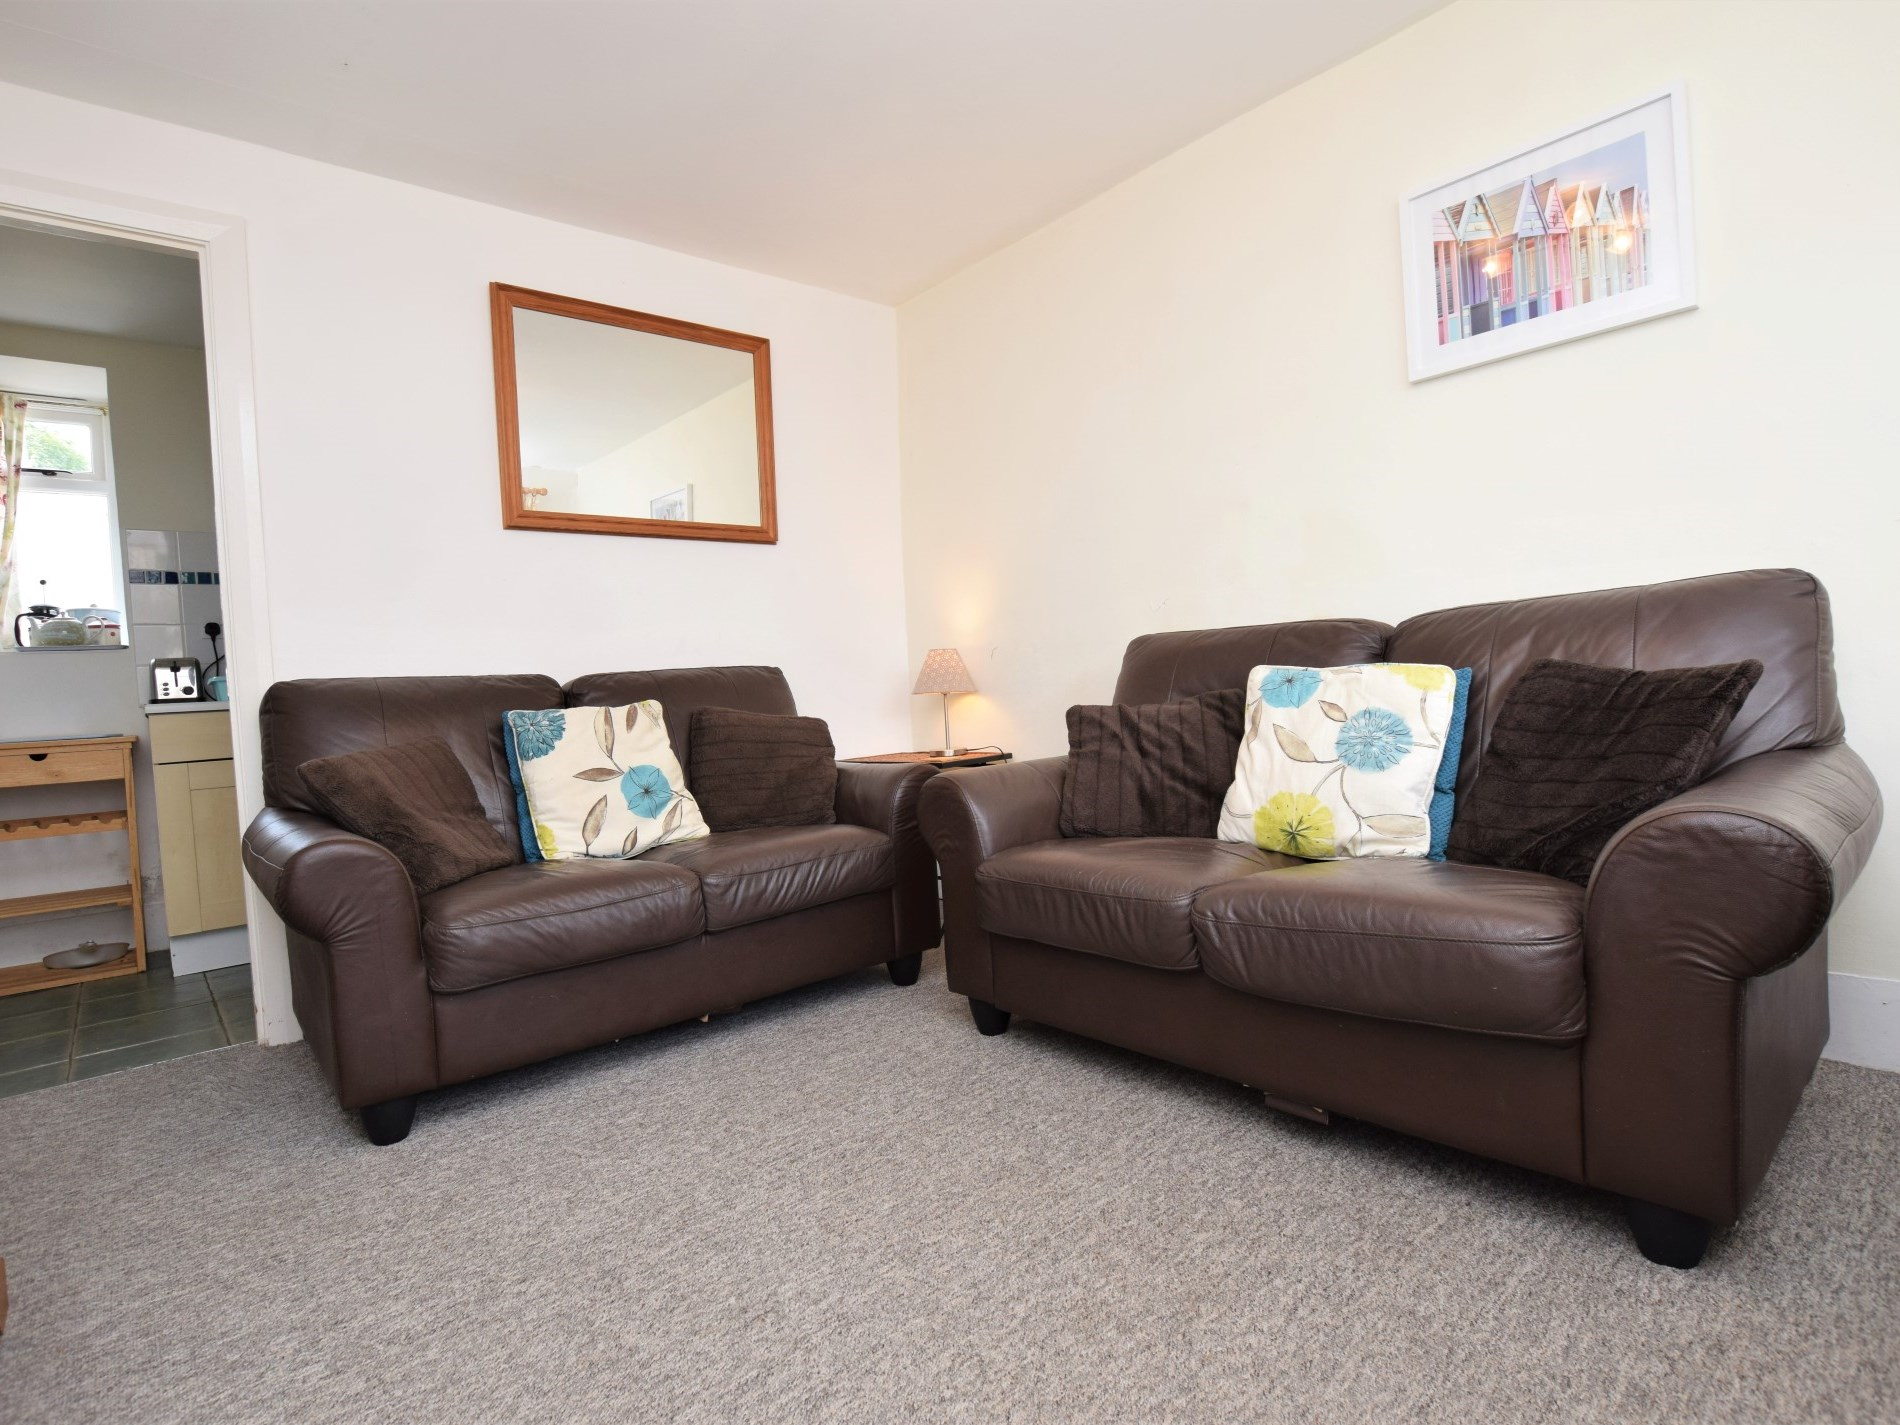 Relax in the sofas after a day exploring